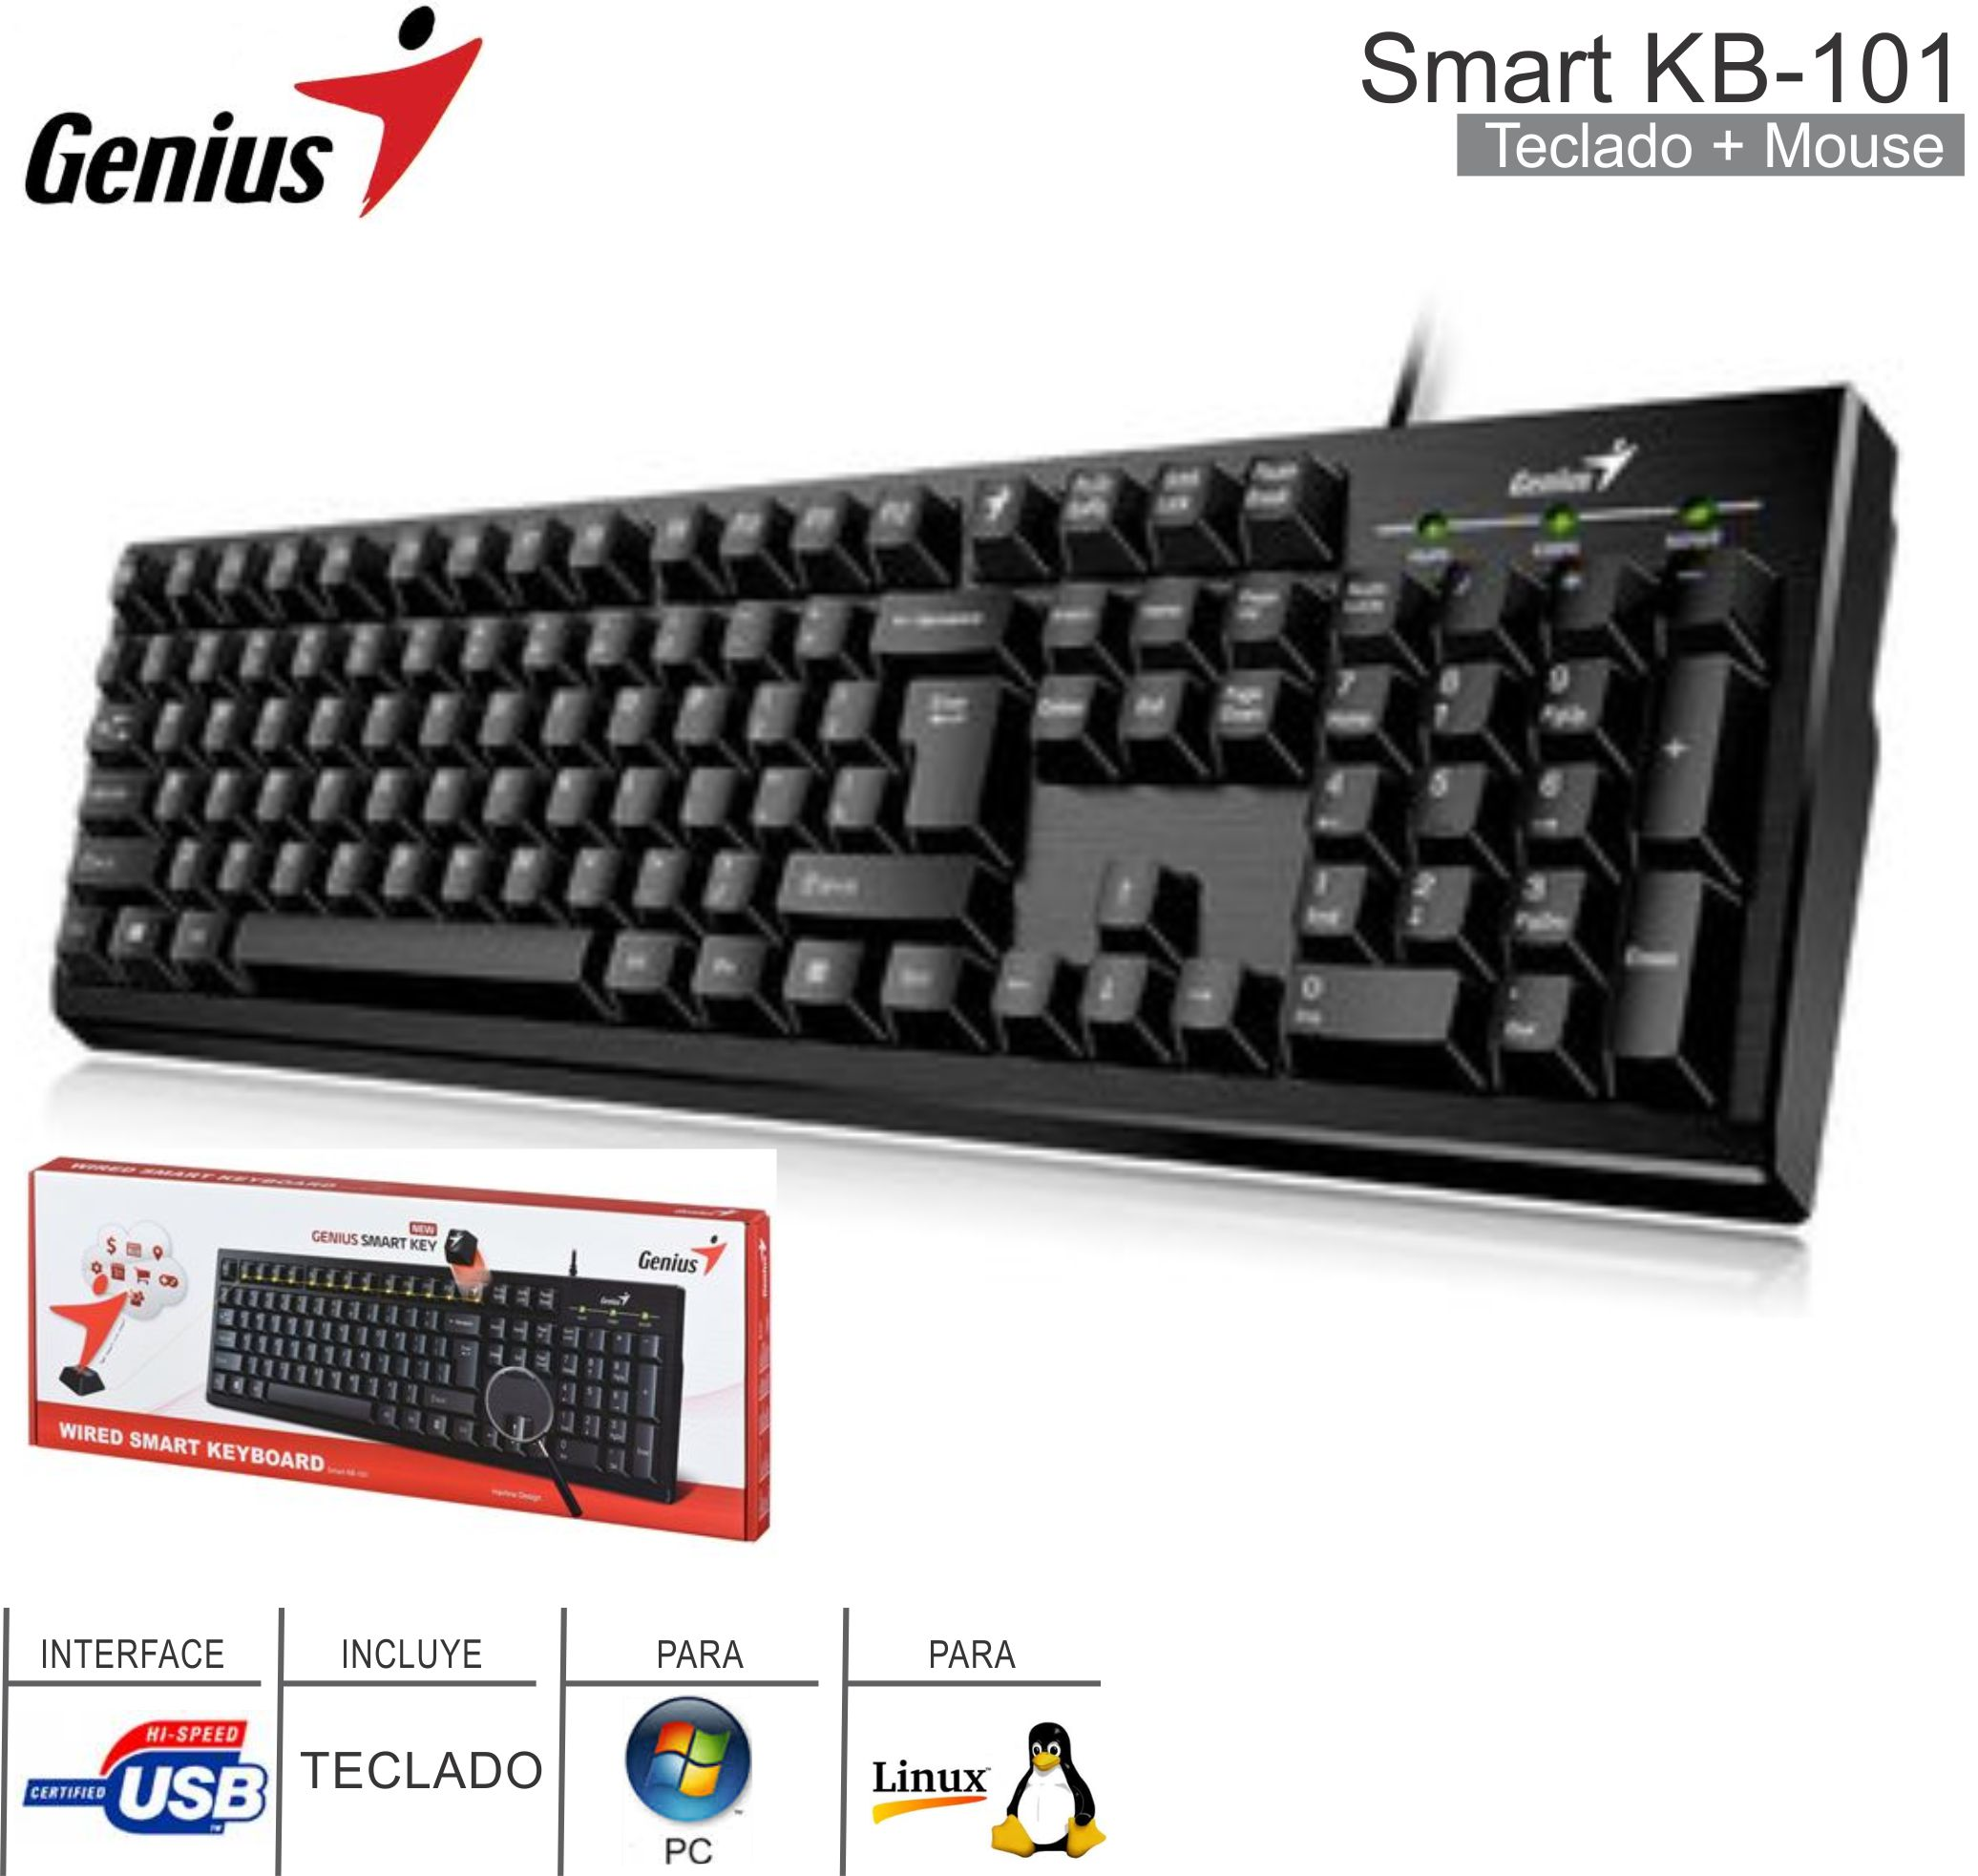 Teclado USB GENIUS Smart KB-101